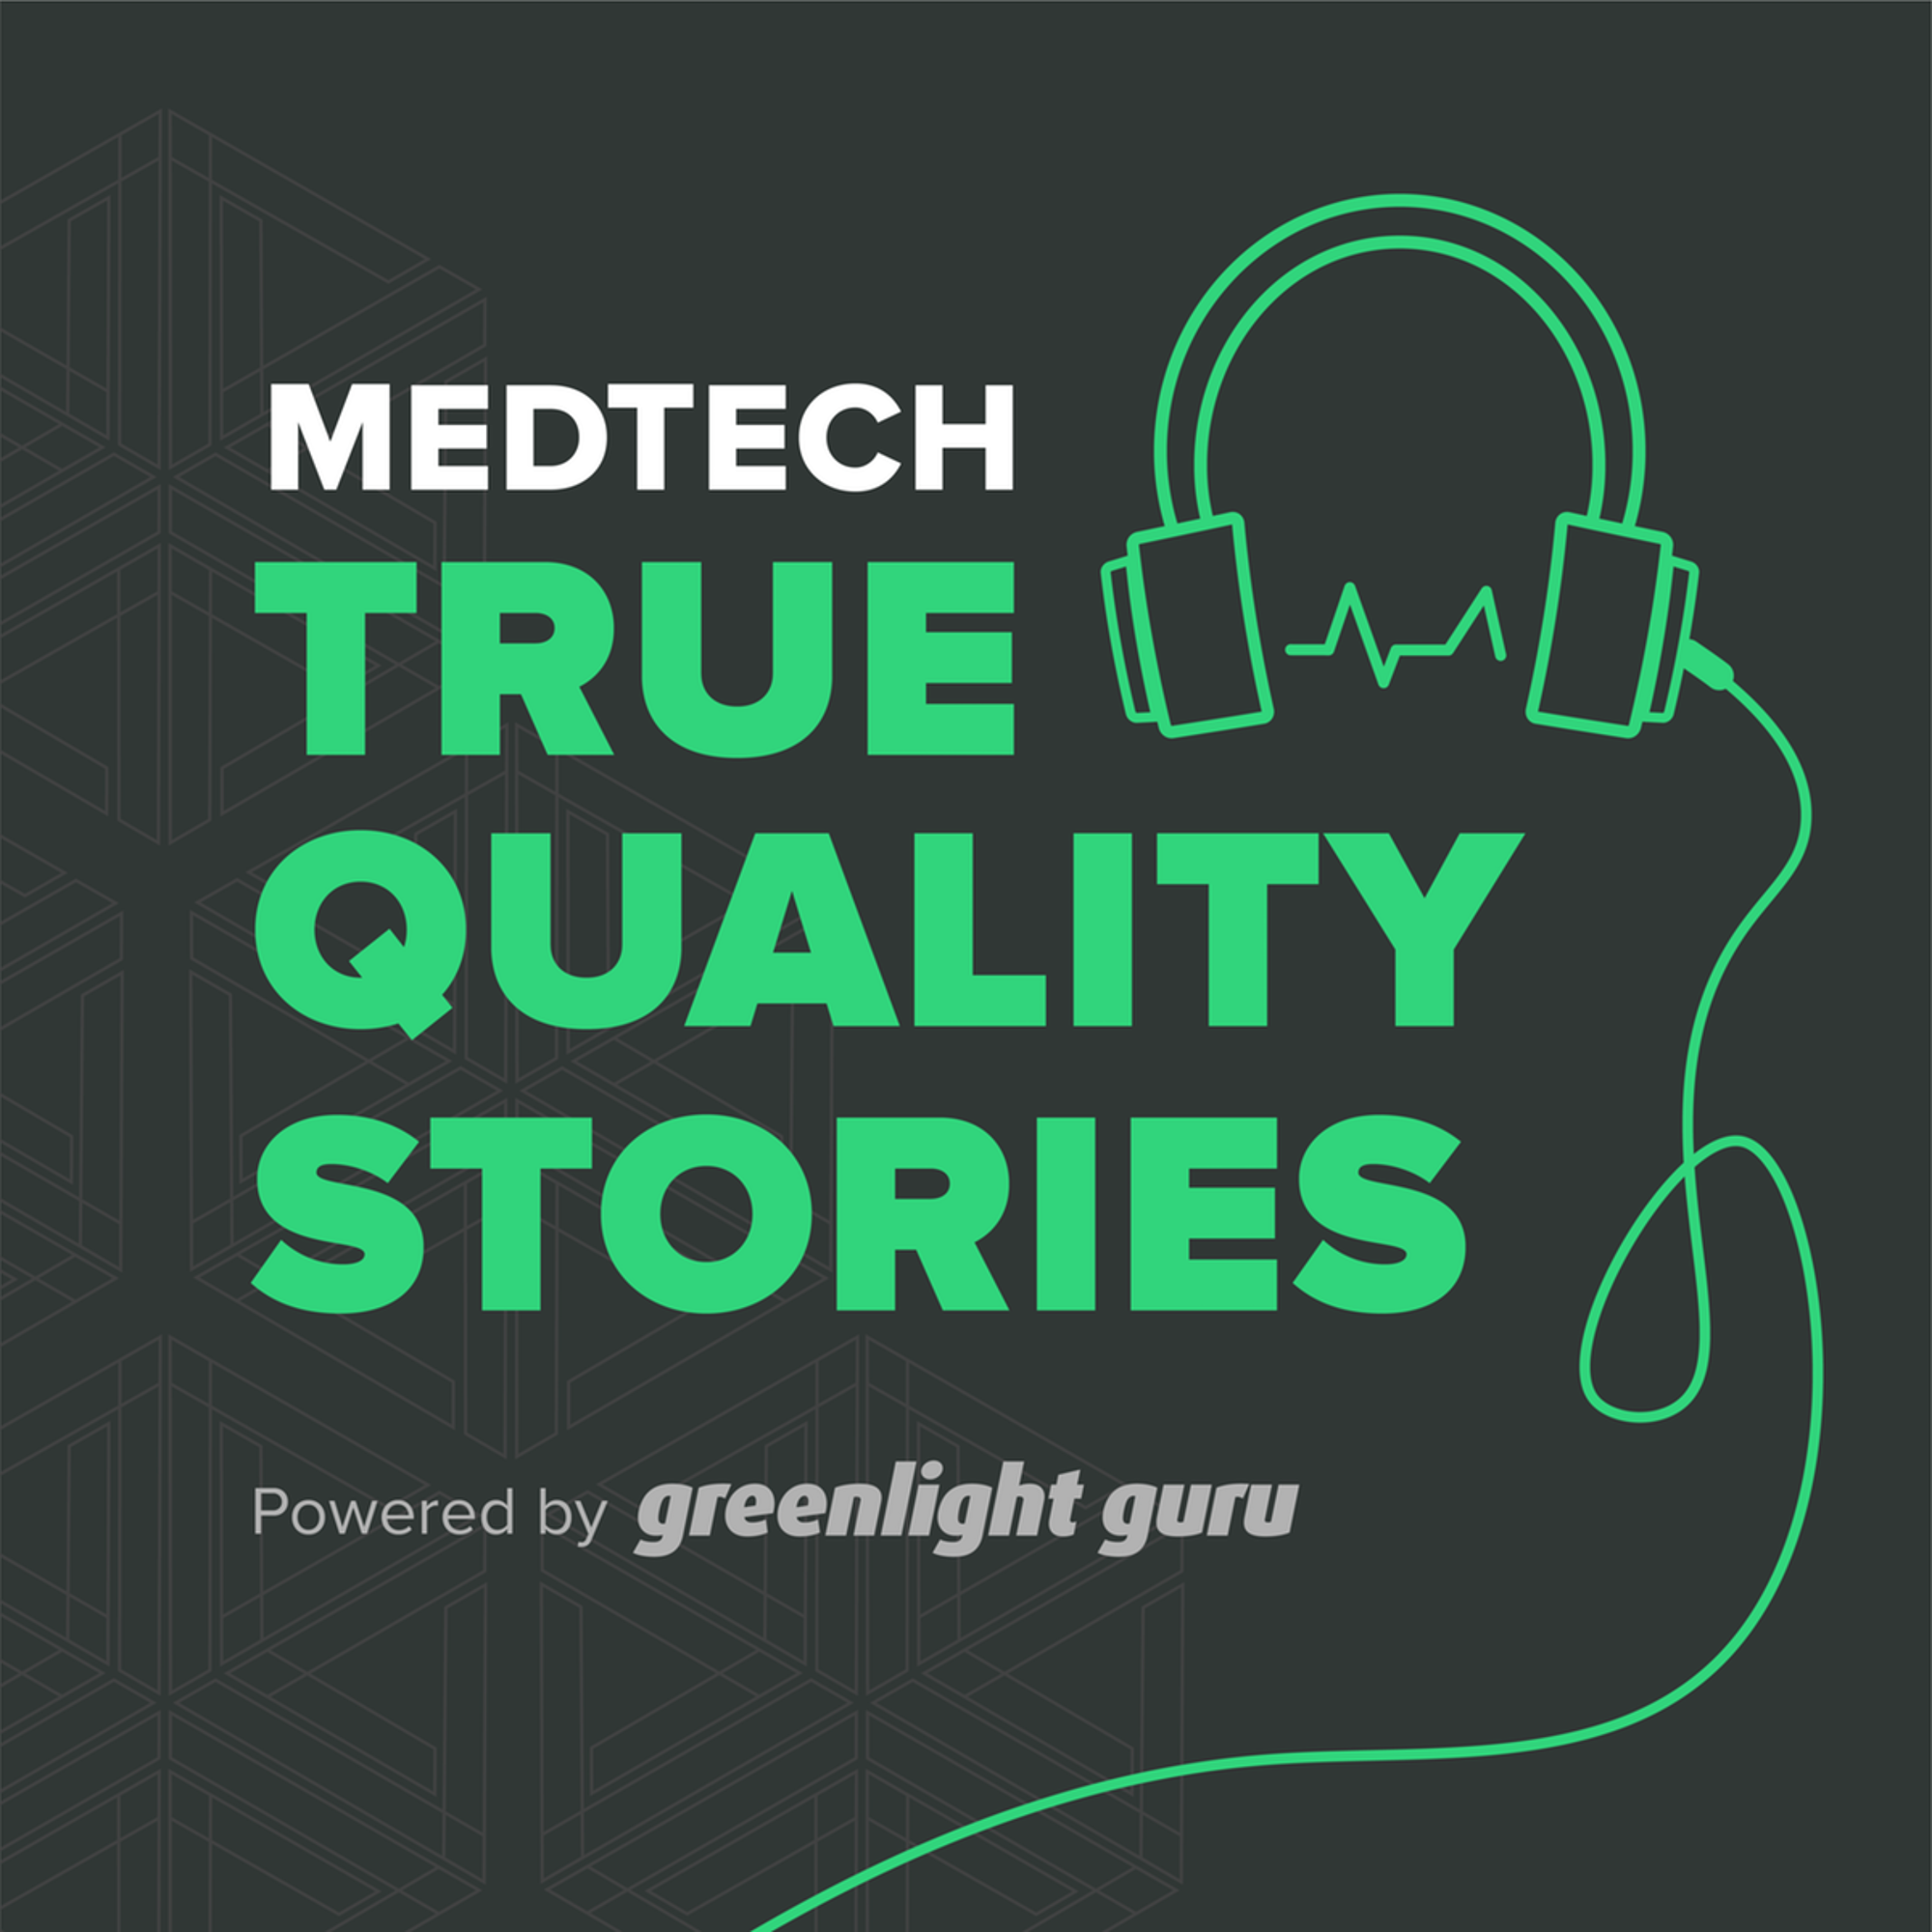 MedTech True Quality Stories logo